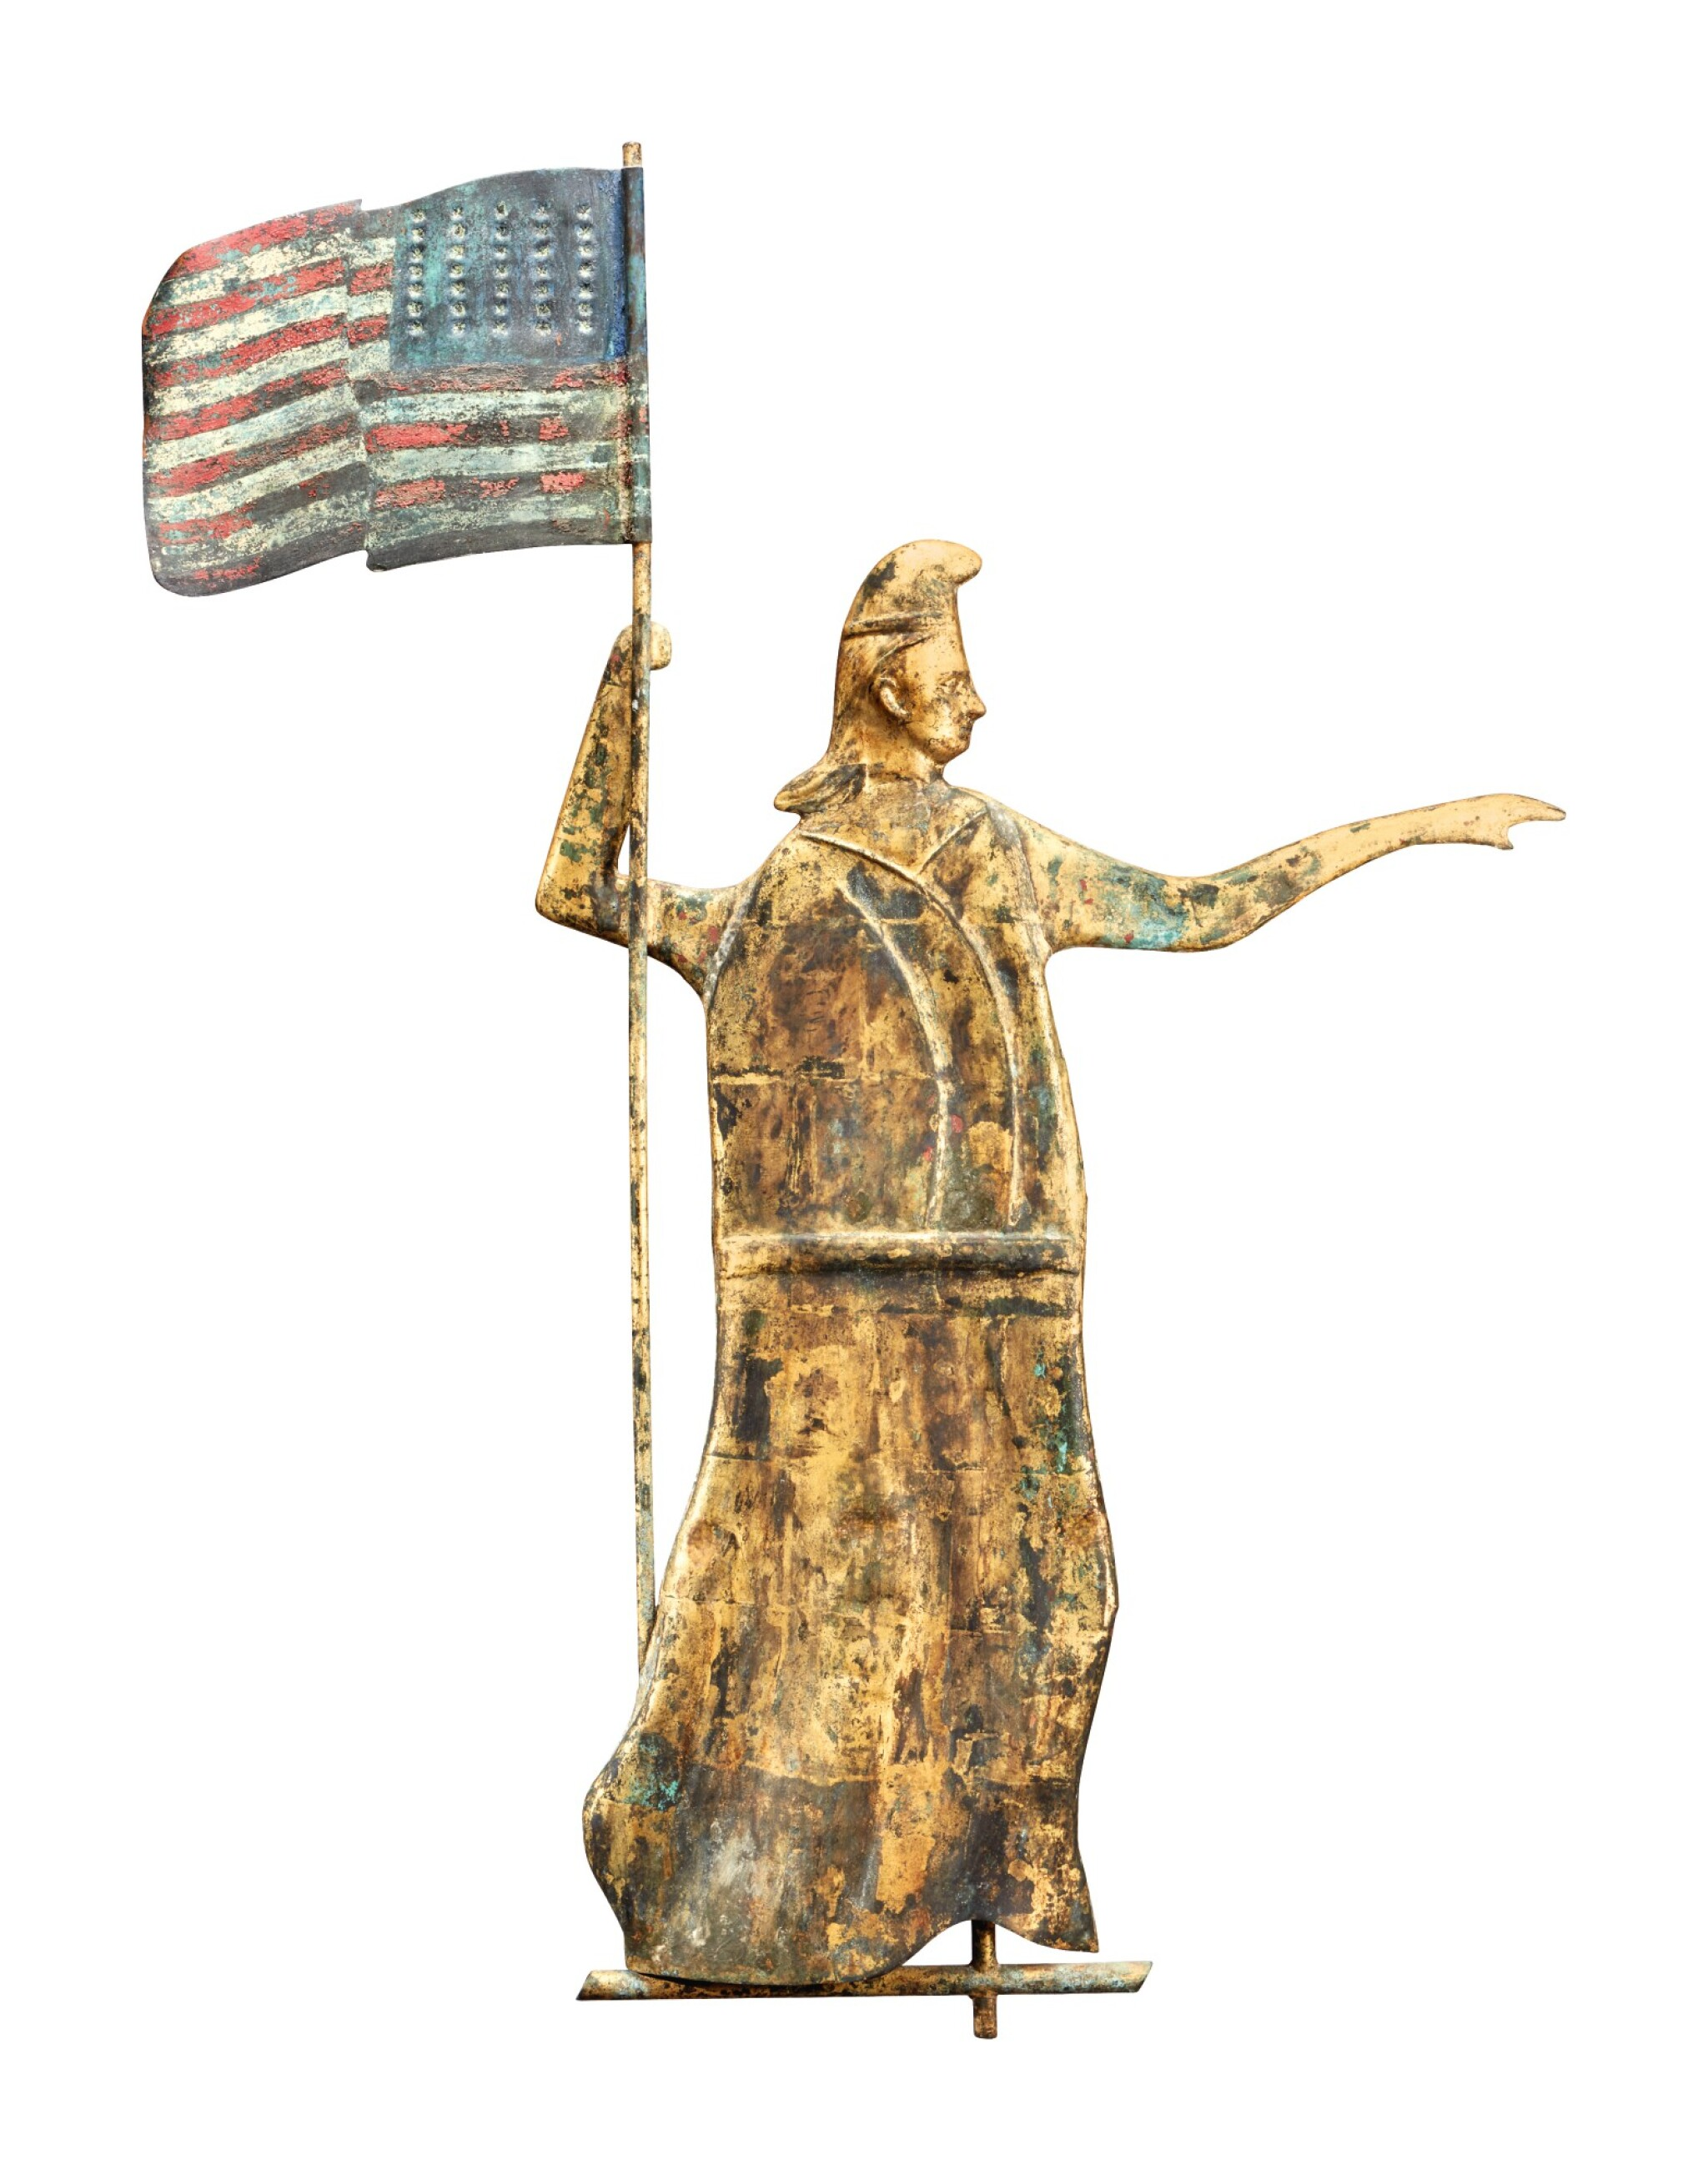 Fine and Rare Molded Copper 'Goddess of Liberty' Weathervane, Possibly J.L. Mott Iron Works, New York, circa 1880